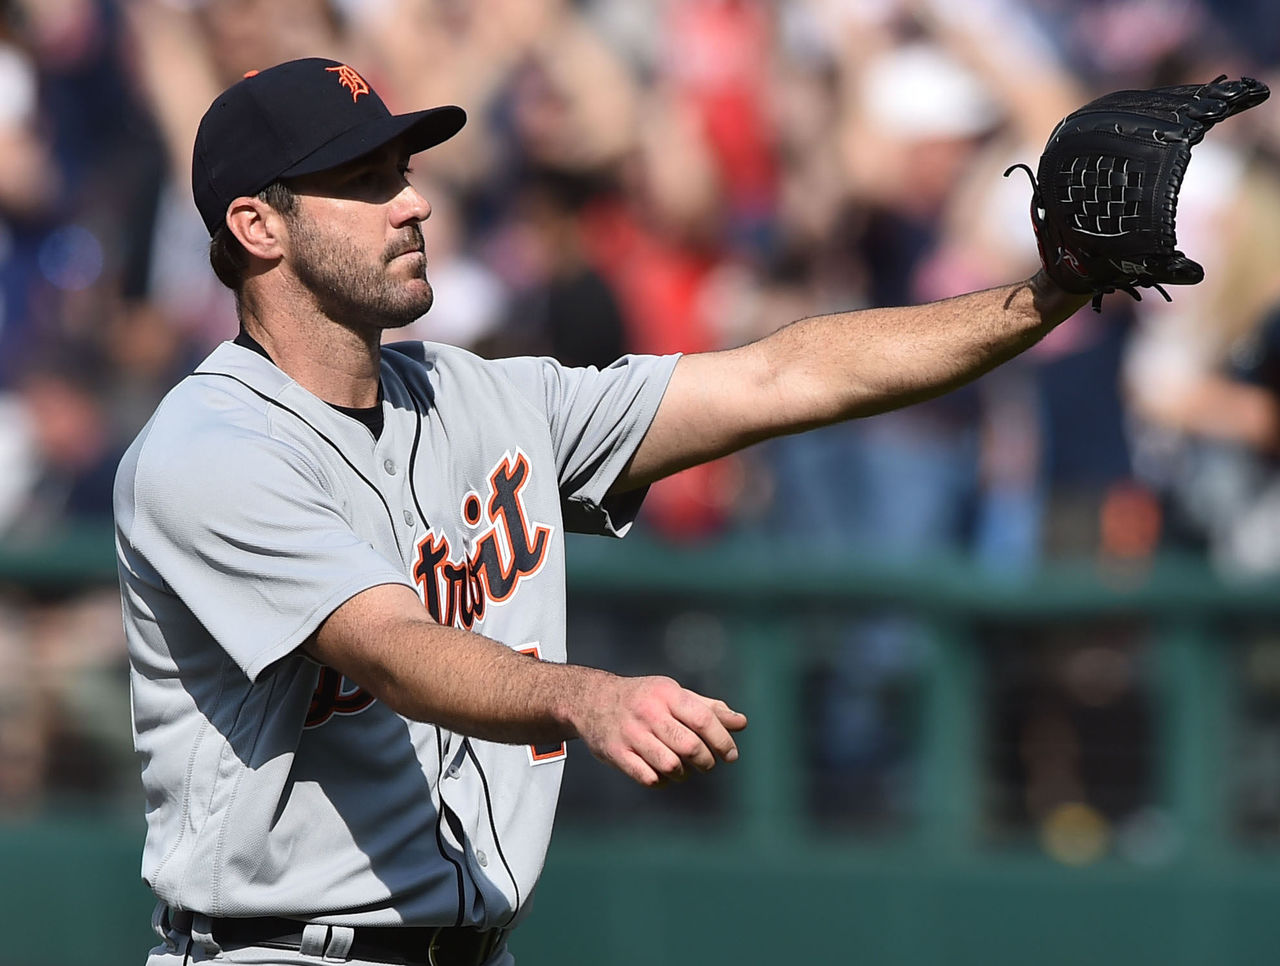 Cropped 2017 04 15t204834z 259825640 nocid rtrmadp 3 mlb detroit tigers at cleveland indians